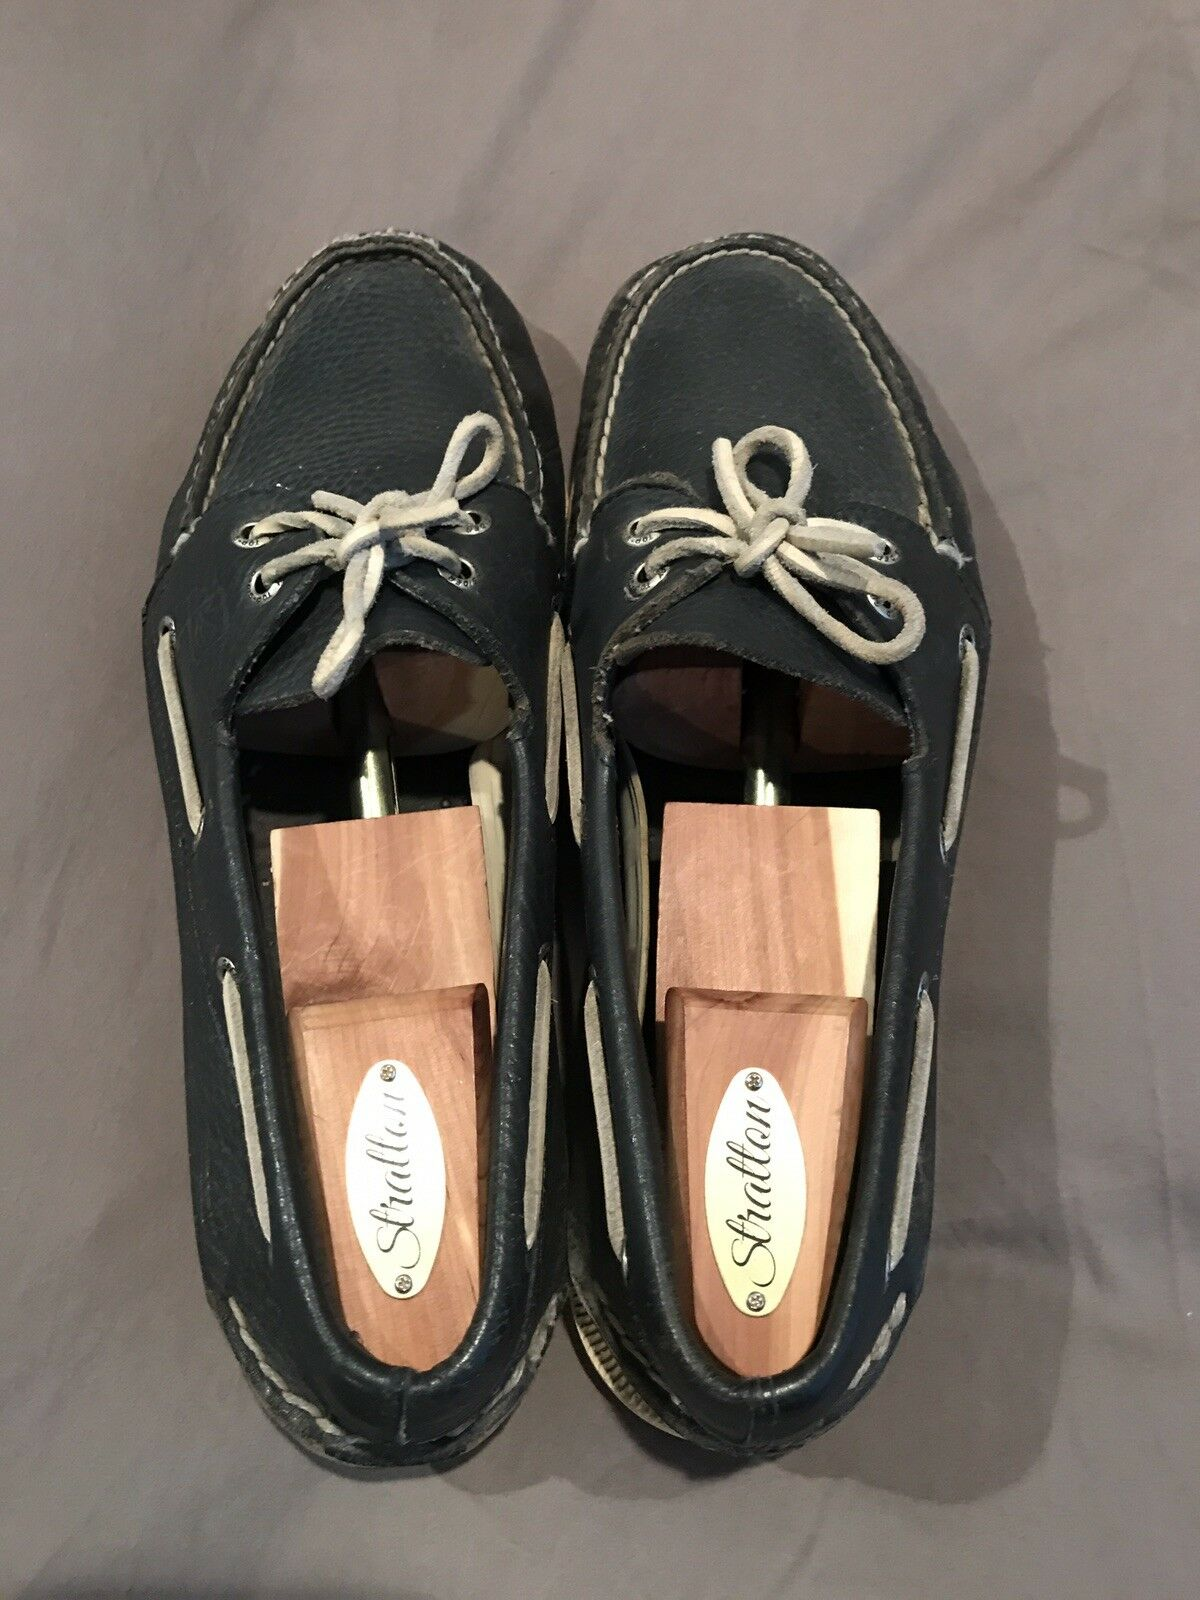 Sperry Top Sider Boat shoes - Navy bluee 10M- Vintage